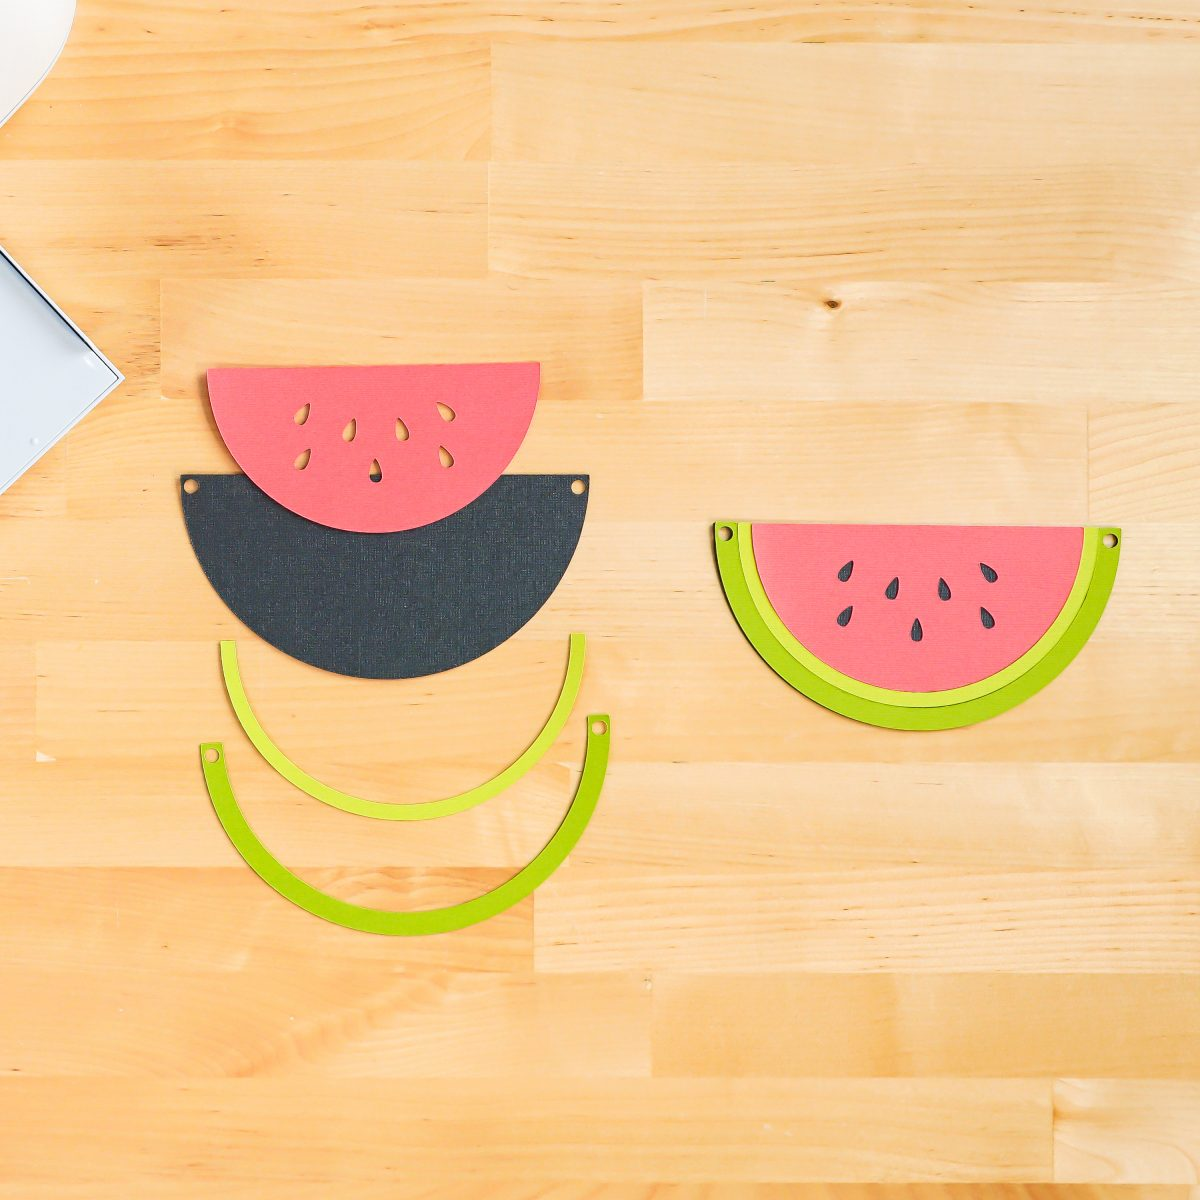 How to assemble the watermelon